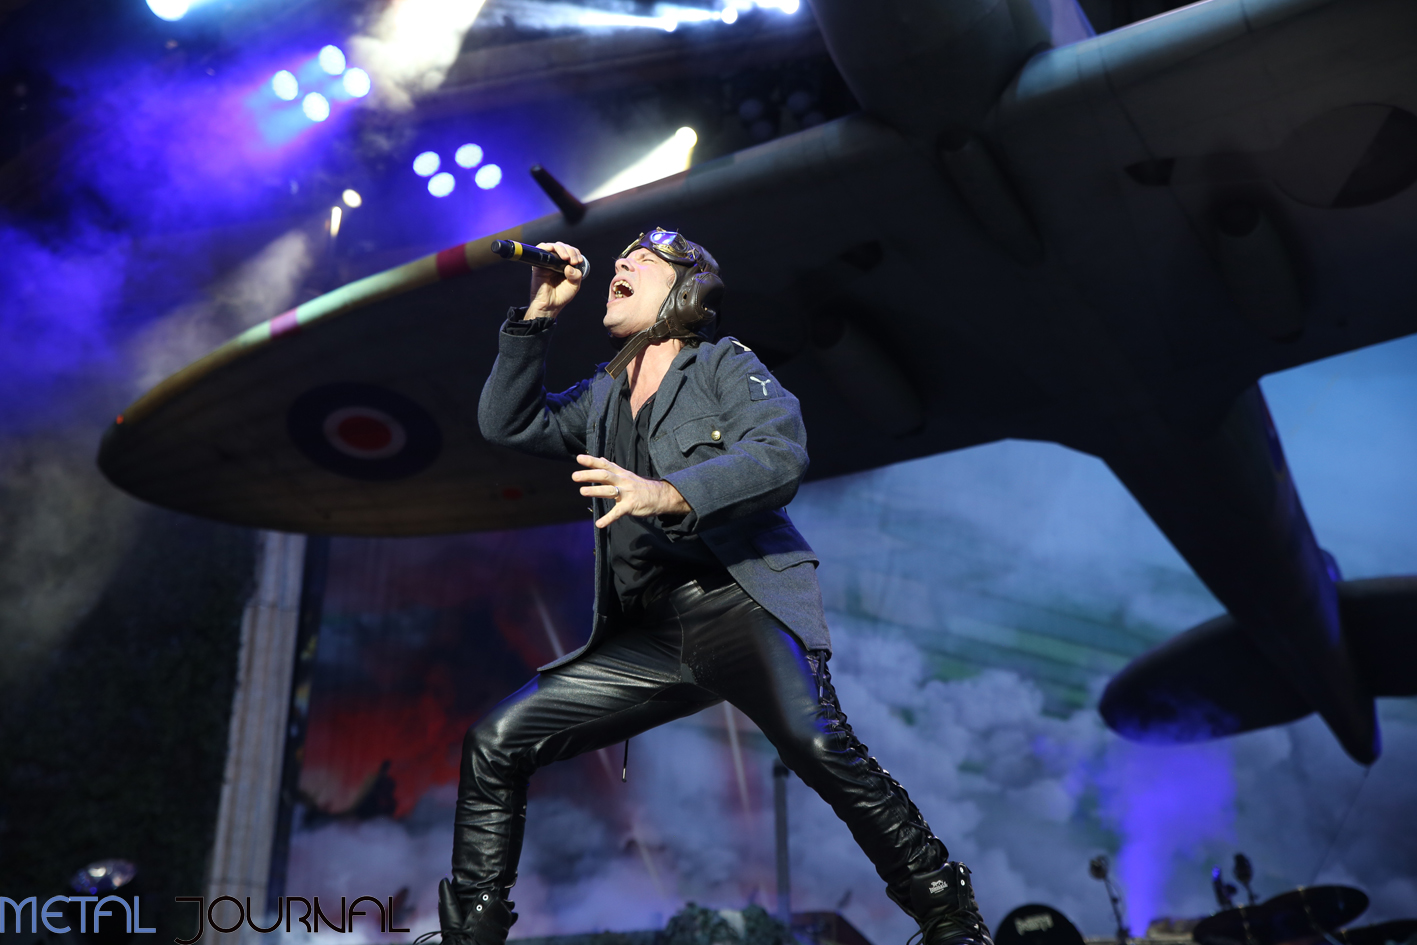 iron maiden - wanda metropolitano metal journal 2018 pic 4